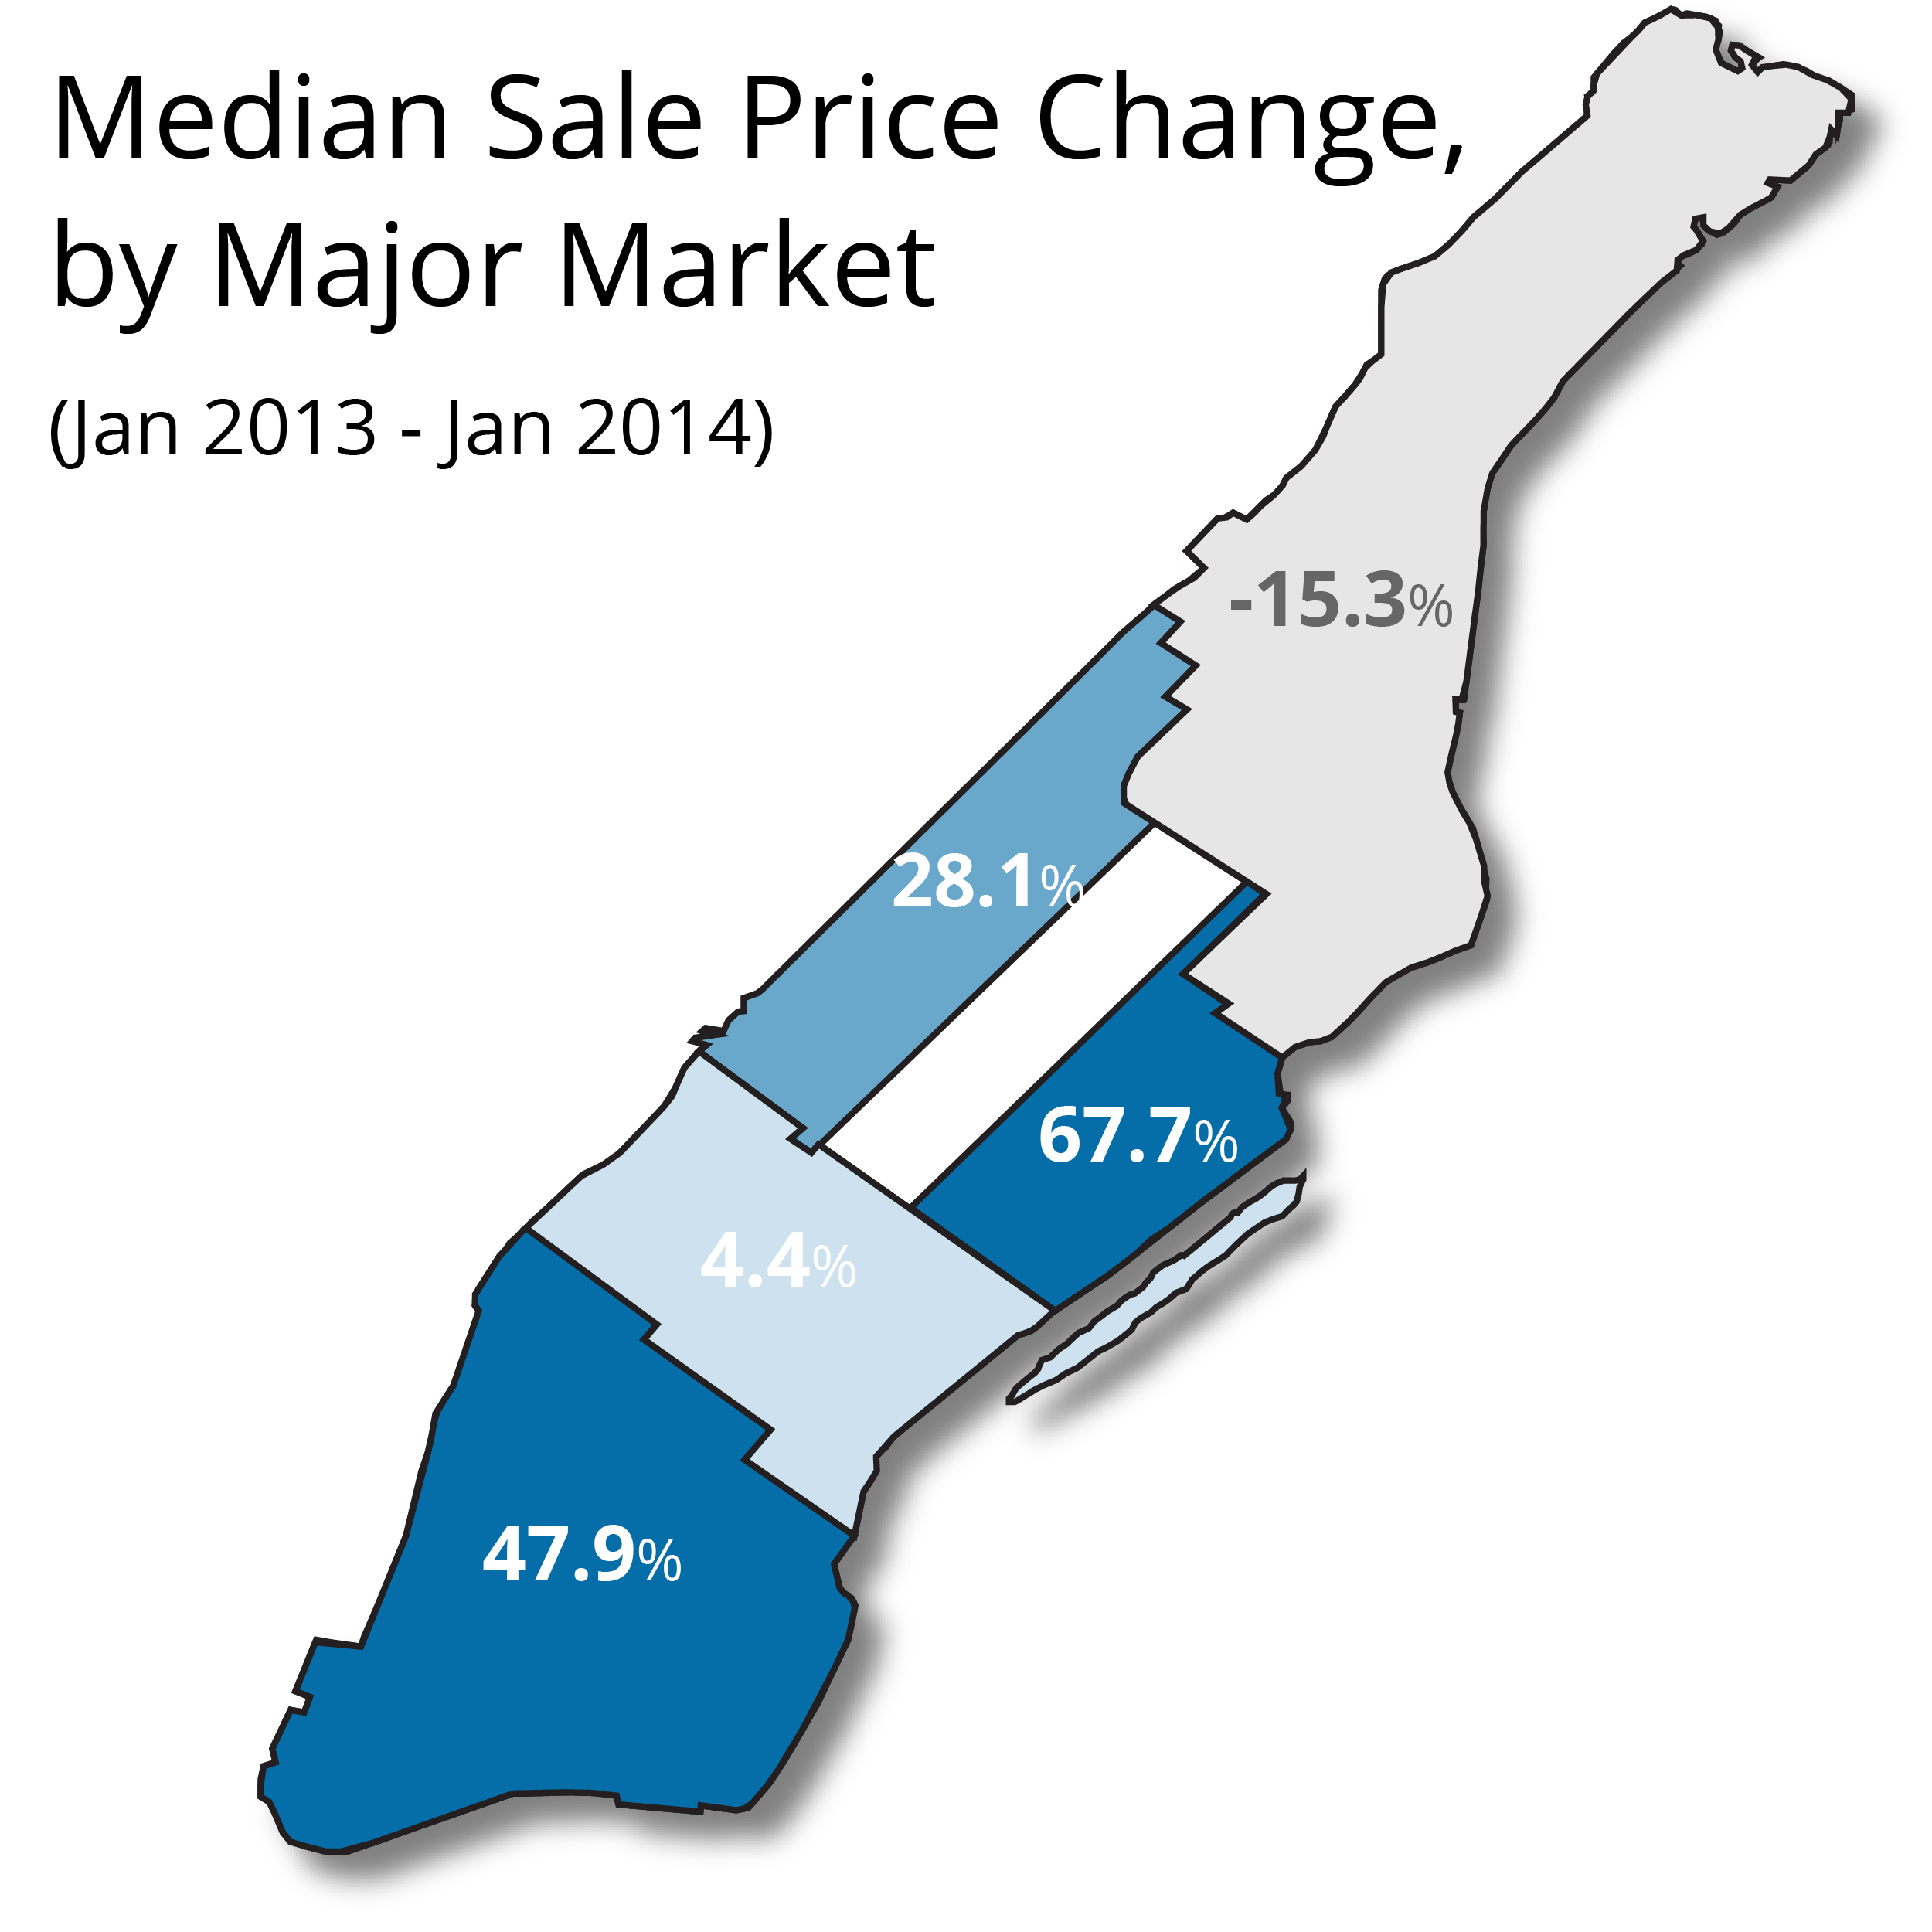 The median sale price in Manhattan increased 32% in January 2014 from the previous year to $970,000.